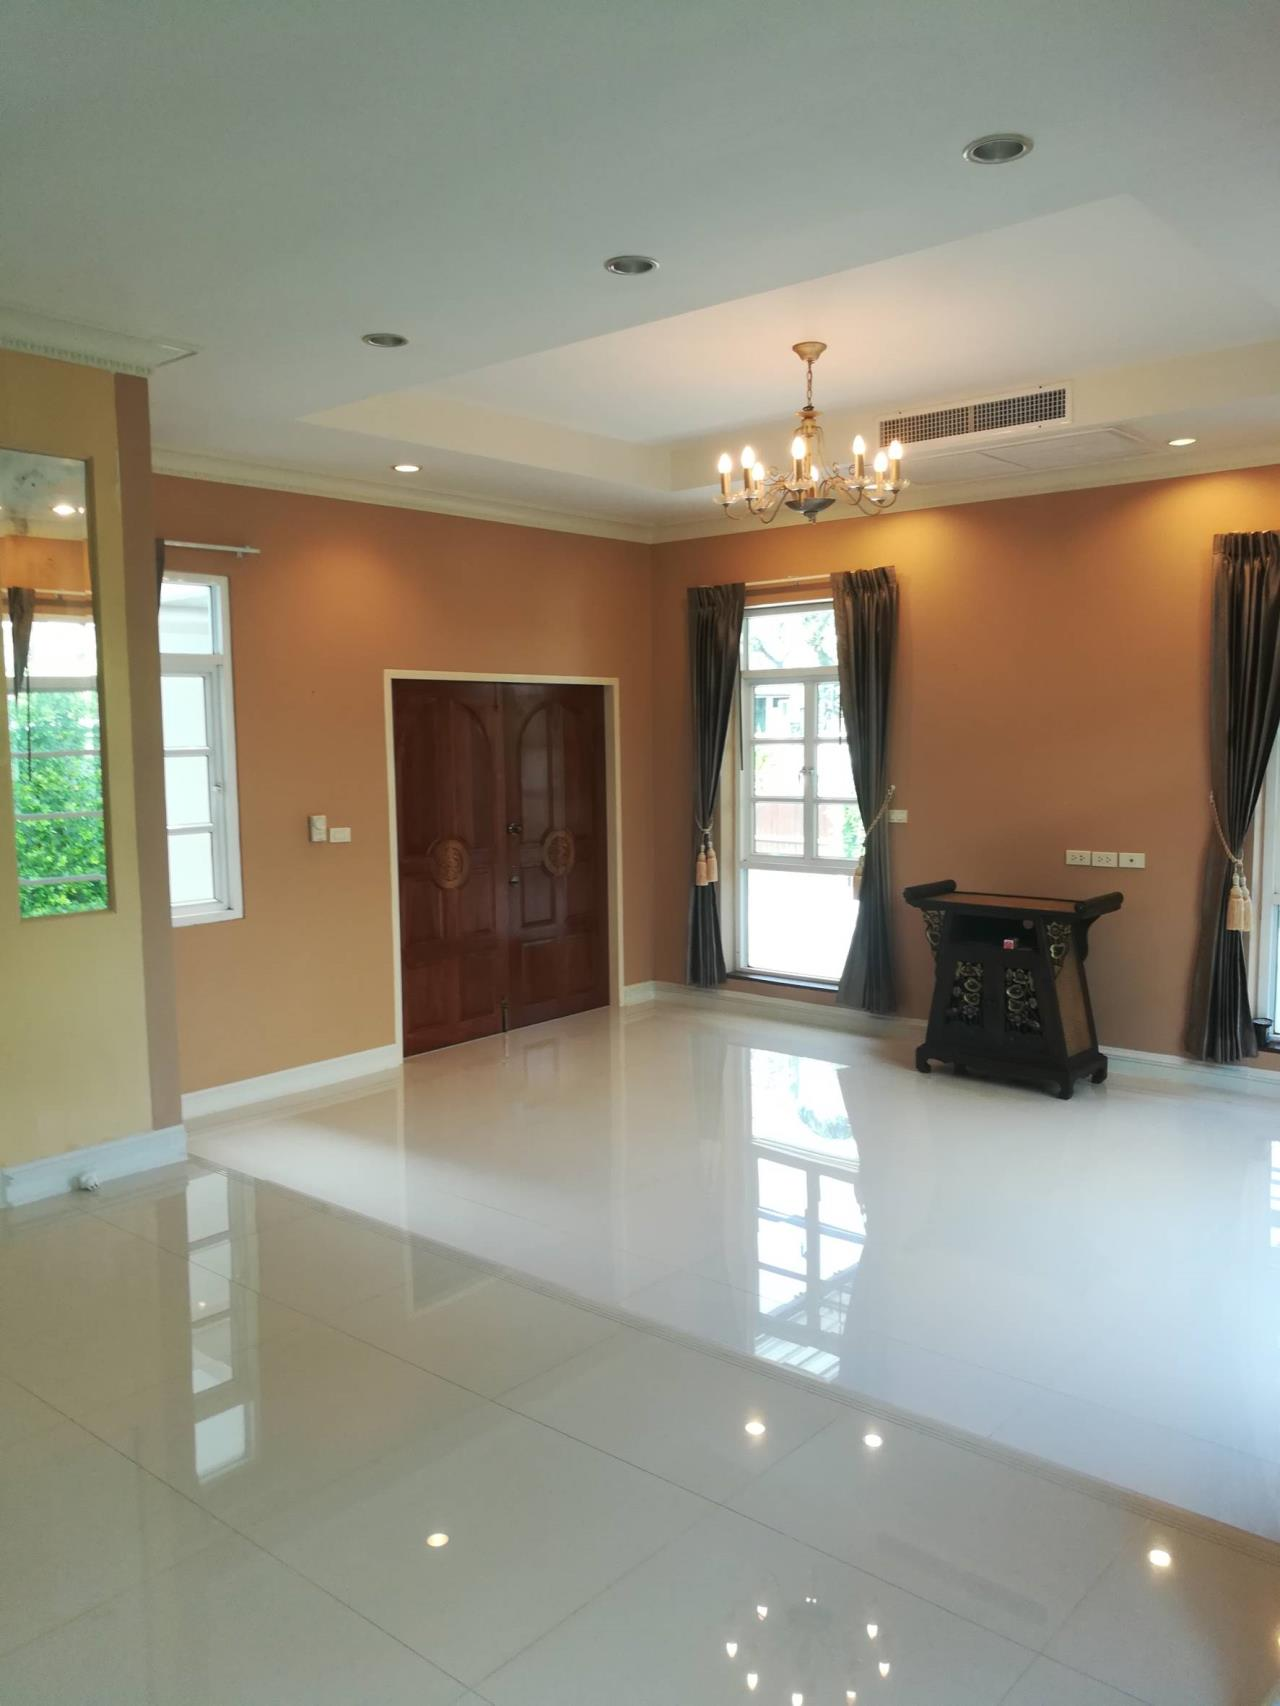 Professional One Service Agency's Detached house 4 bedroom near ISB school 5